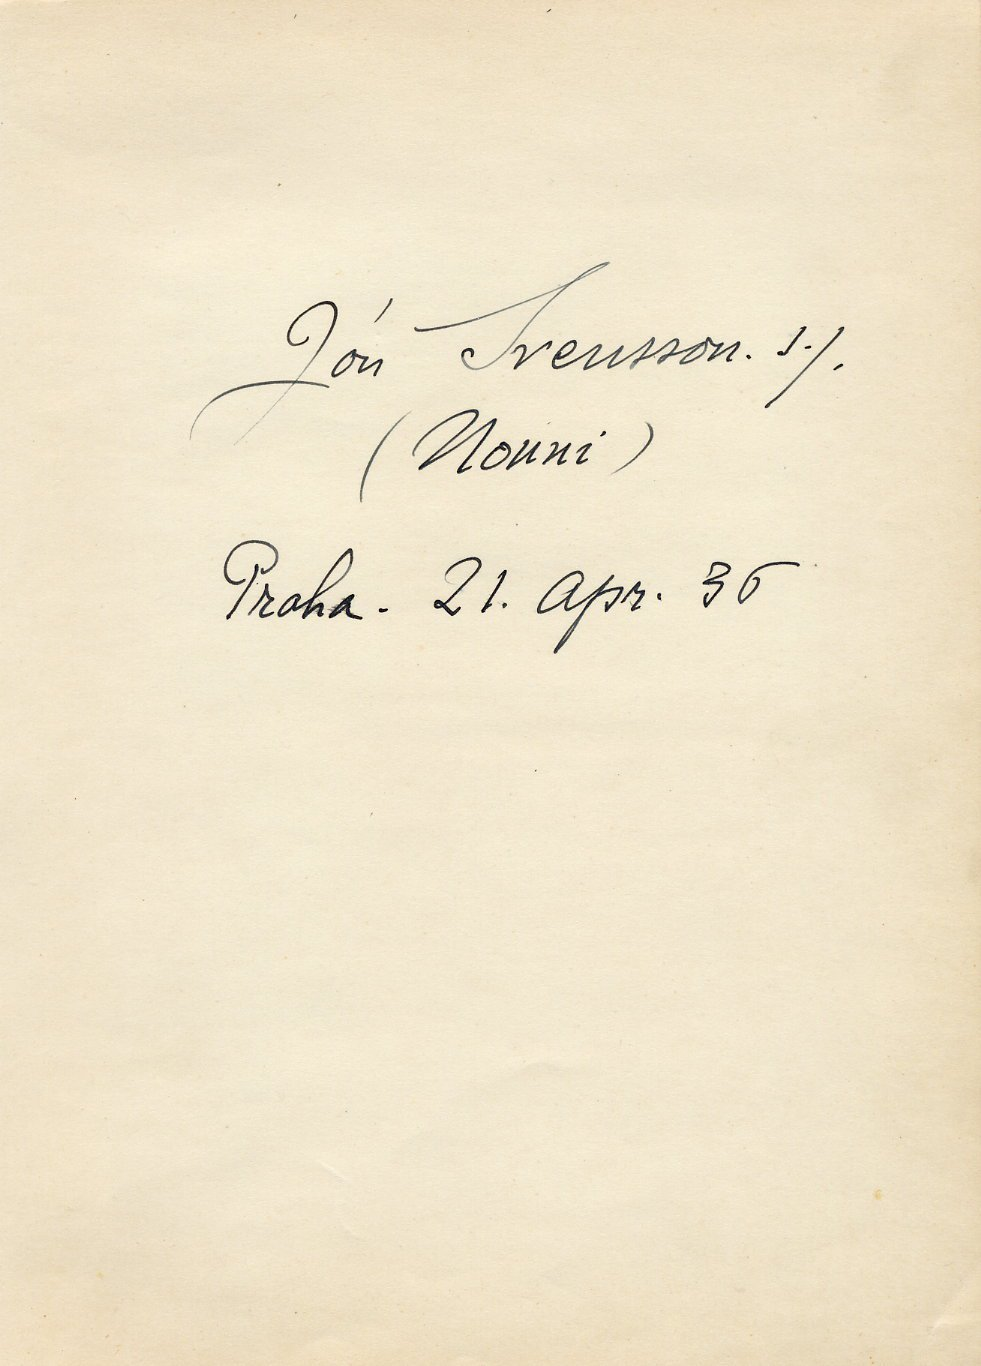 Iceland - Renowned NONNI Writer JON SVENSSON Autograph from 1936 SCARCE!